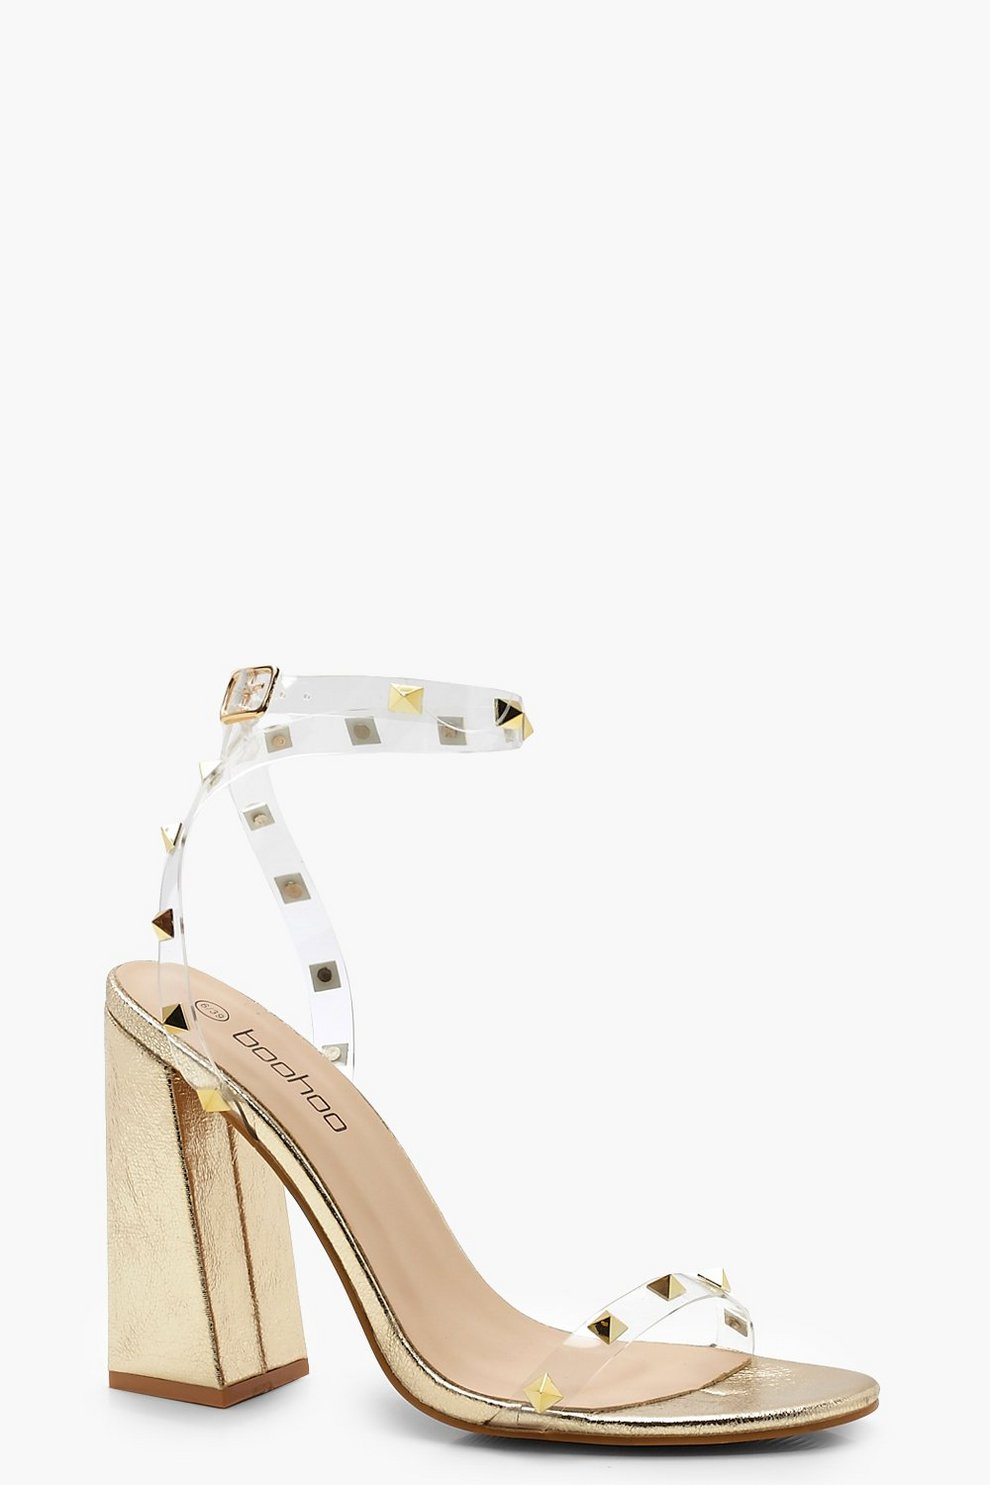 59a8cb56f5 Womens Gold Block Heel Metallic Stud and Clear Heels. Hover to zoom